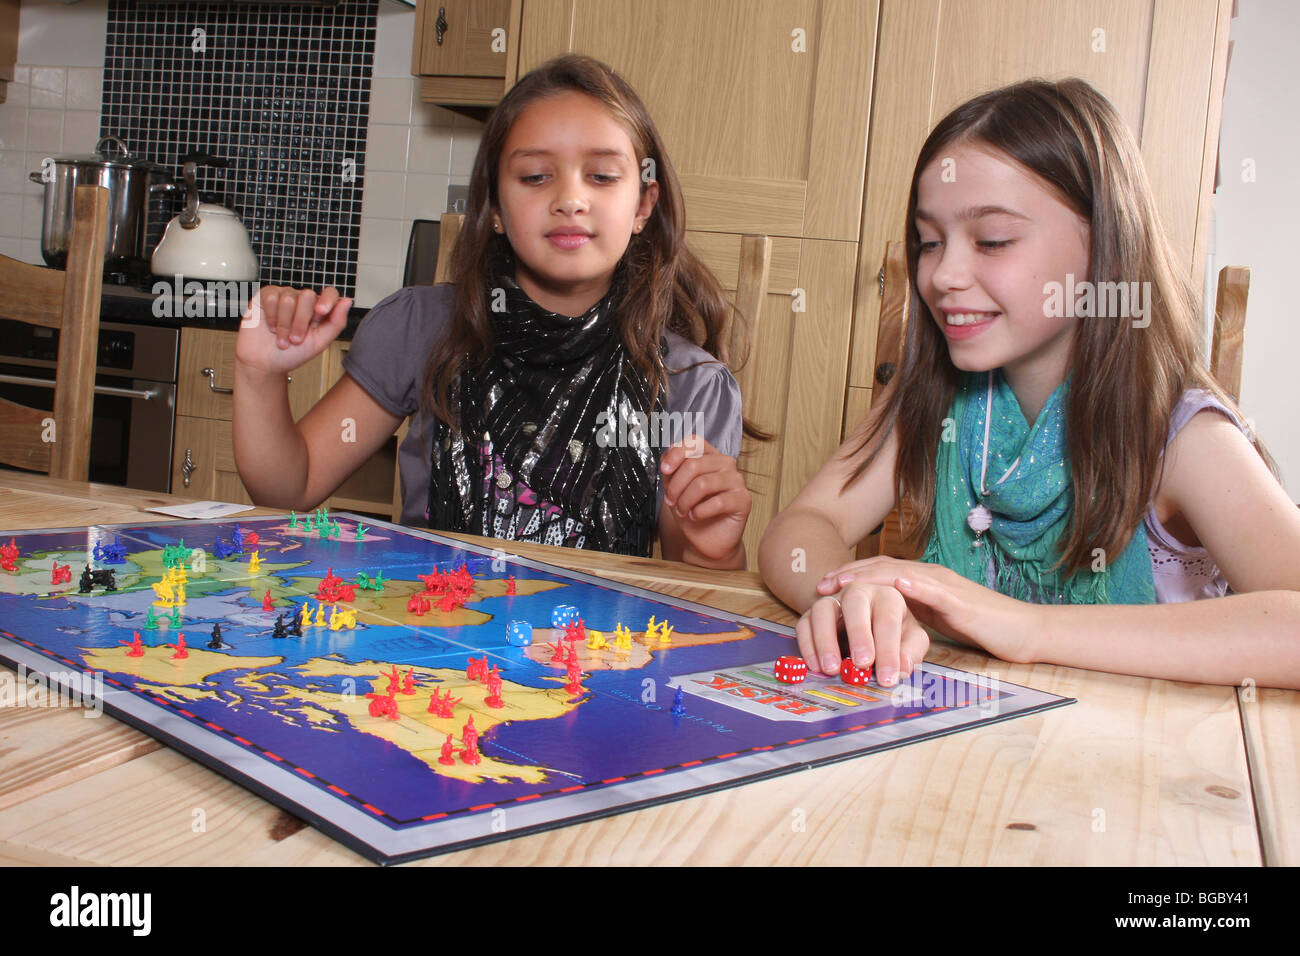 Children playing the board game Risk. - Stock Image